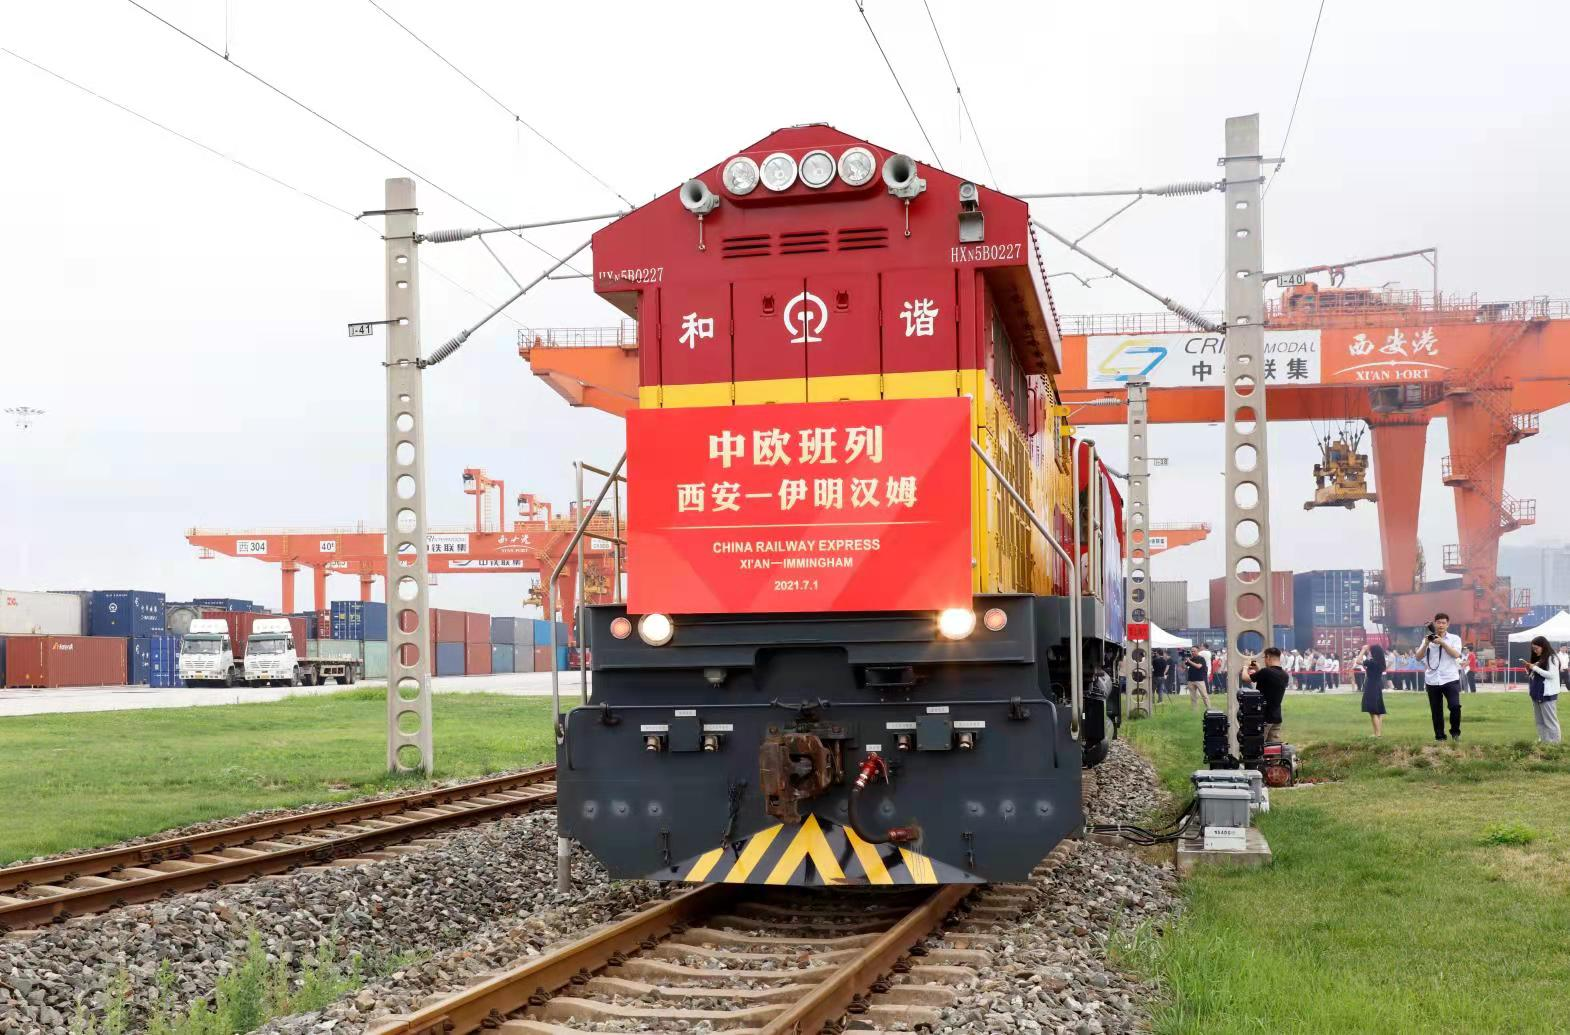 Freight train departed from Xi'an heading Immingham